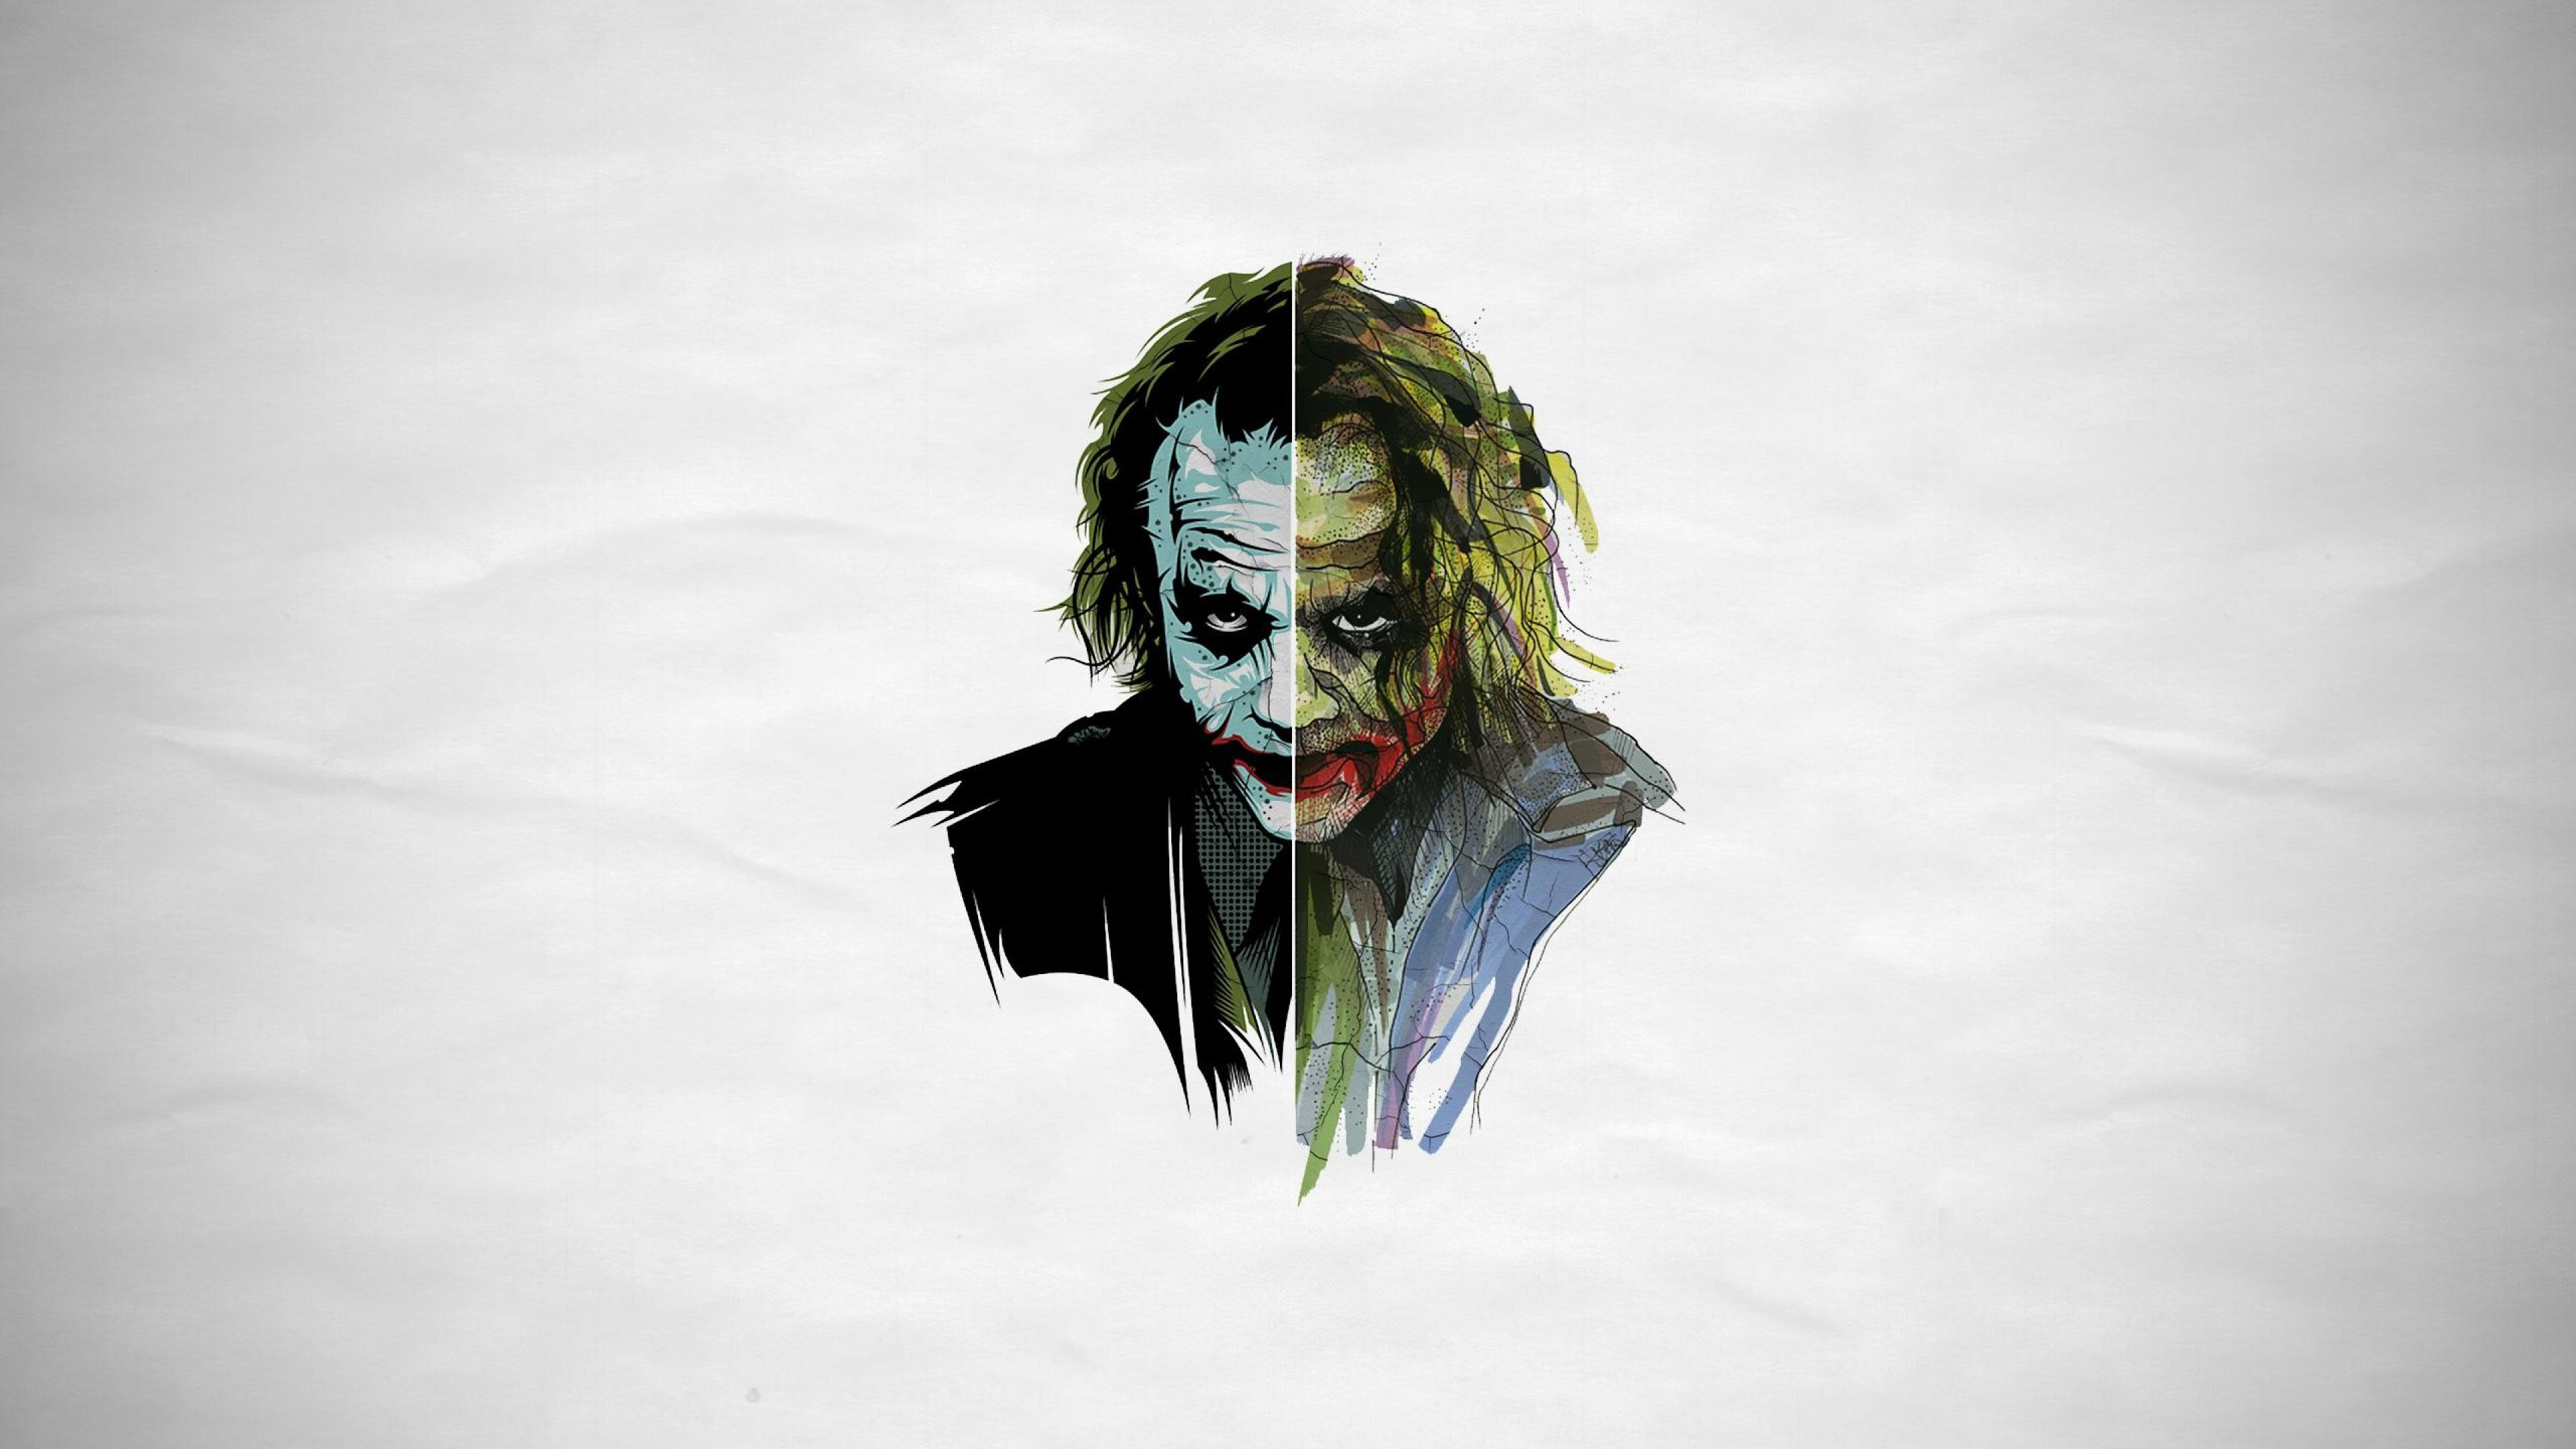 4k Ultra Hd Joker Wallpapers Hd Desktop Backgrounds 3840x2160 Joker Hd Wallpaper Joker Wallpapers Dark Wallpaper Iphone